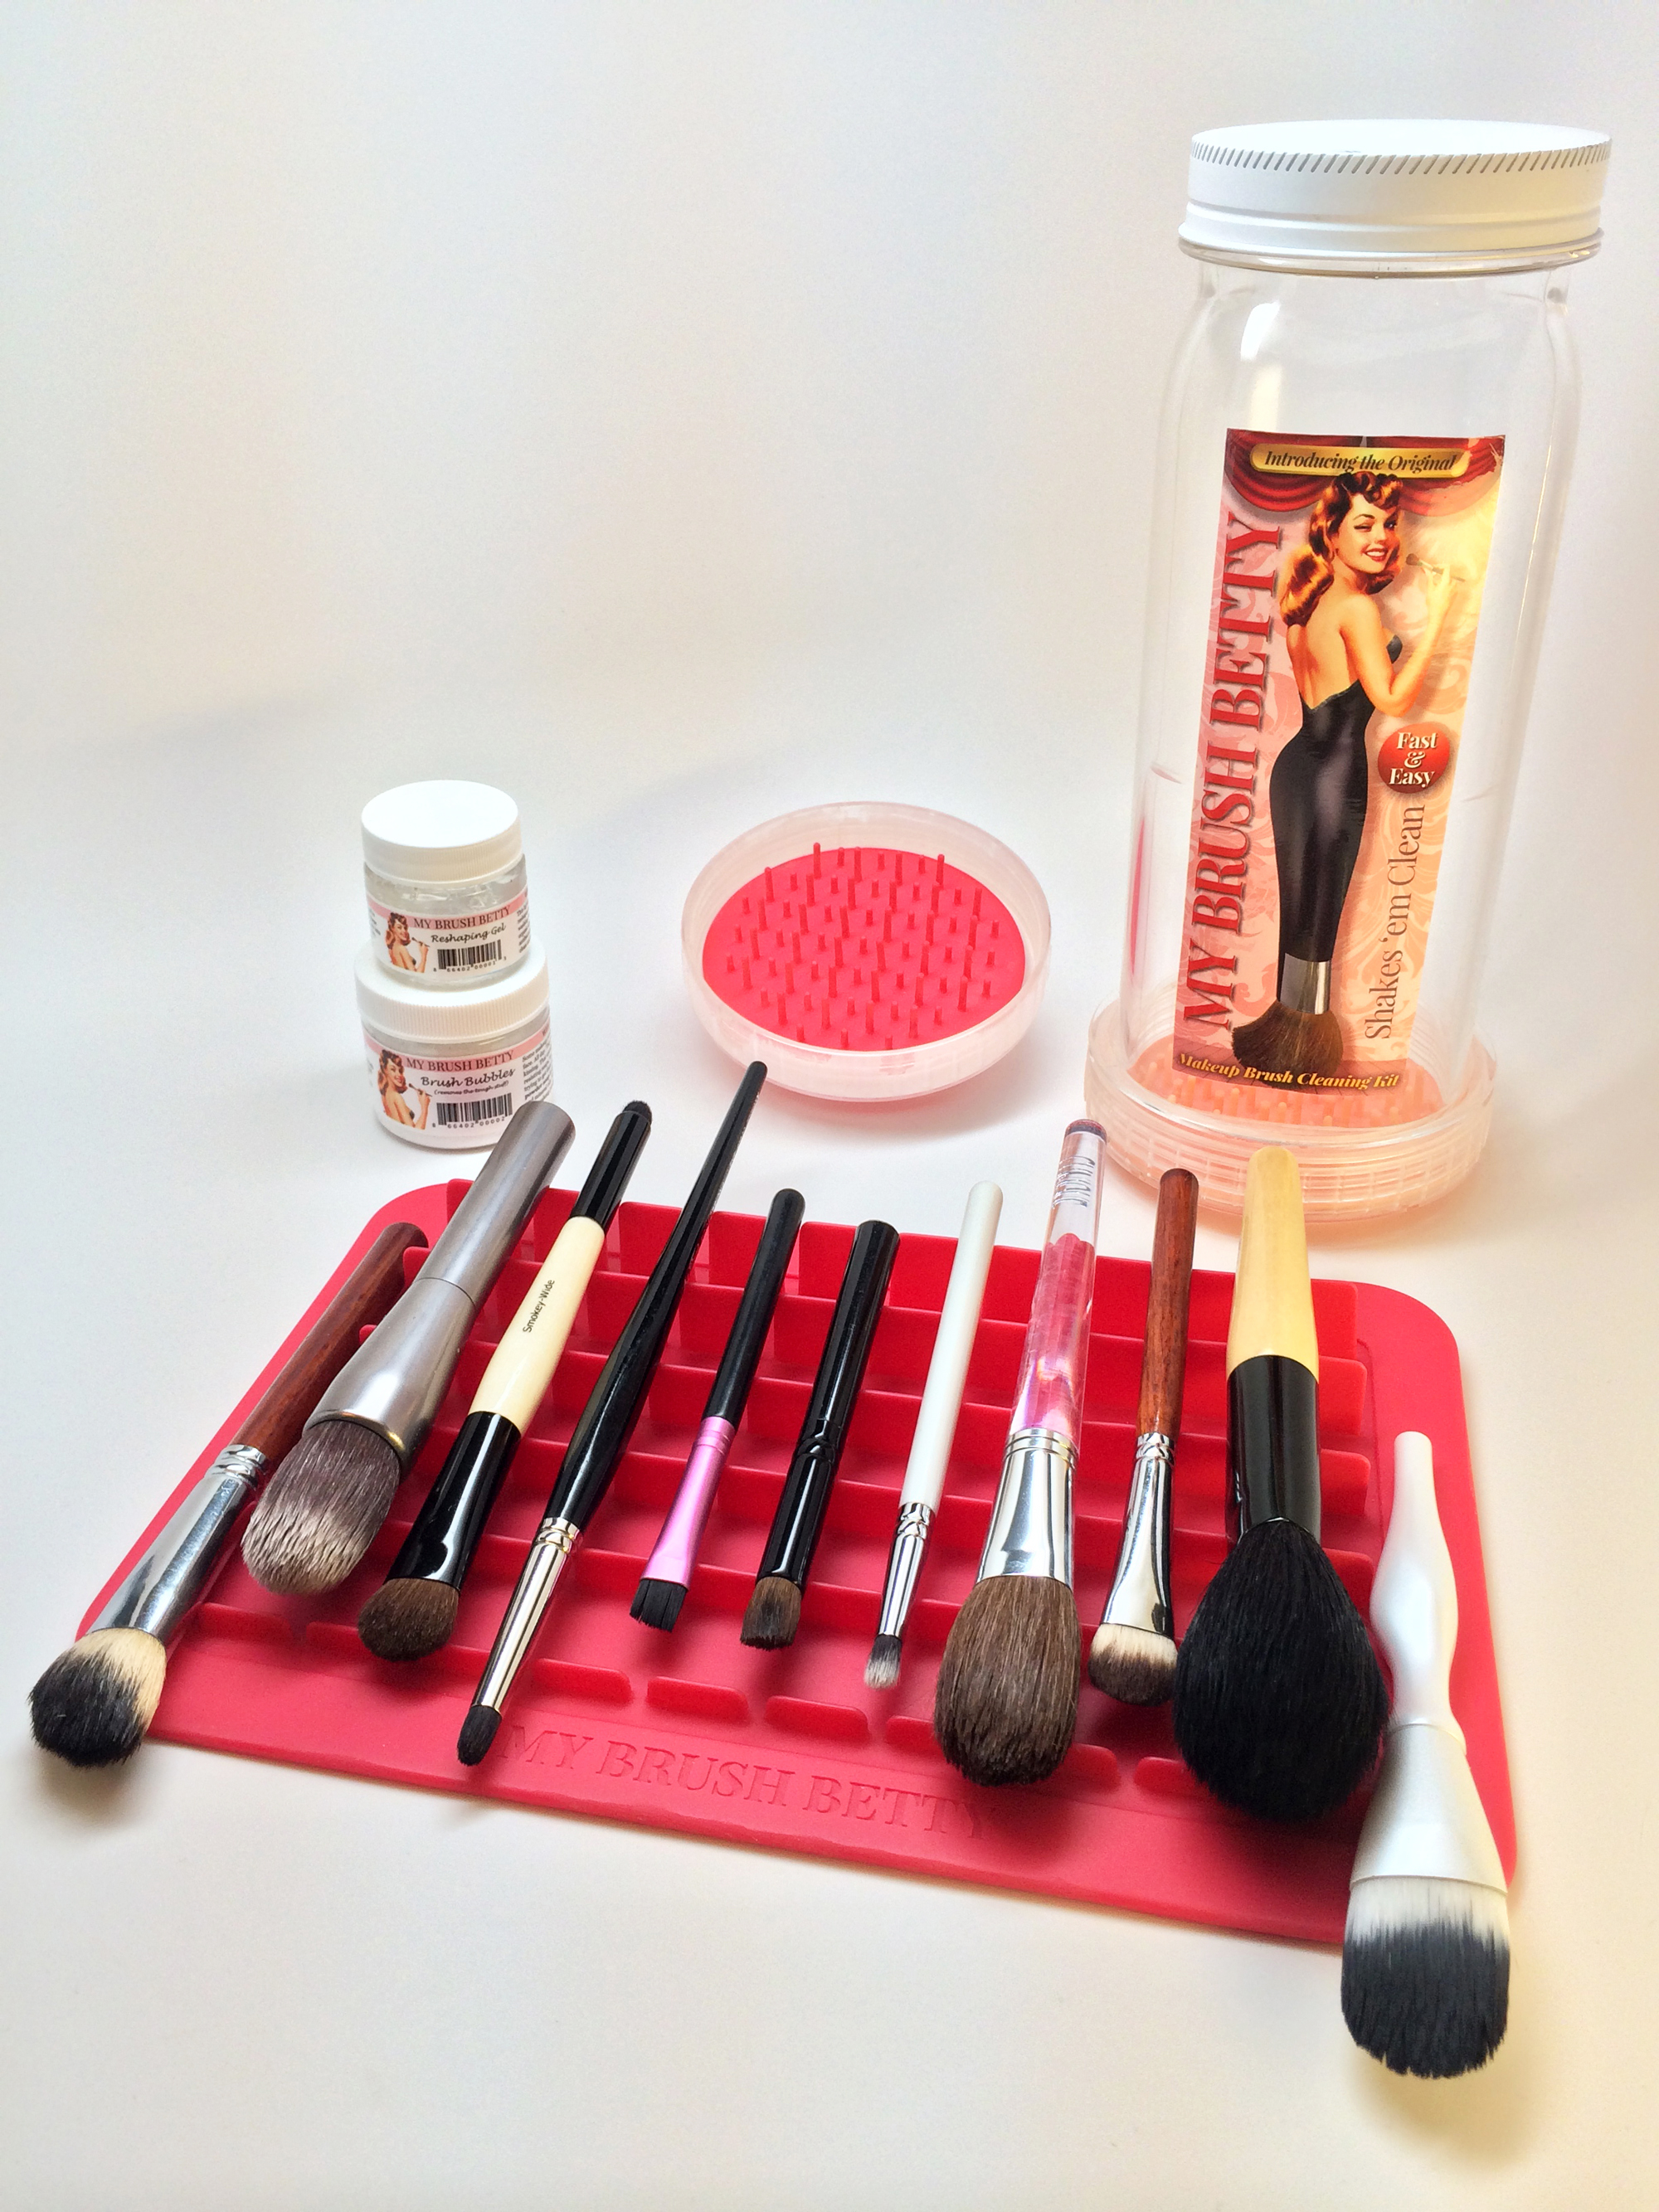 dfd16d12b Photographs of My Brush Betty's Original Cleaning Kit and accessories,  which are available for sharing